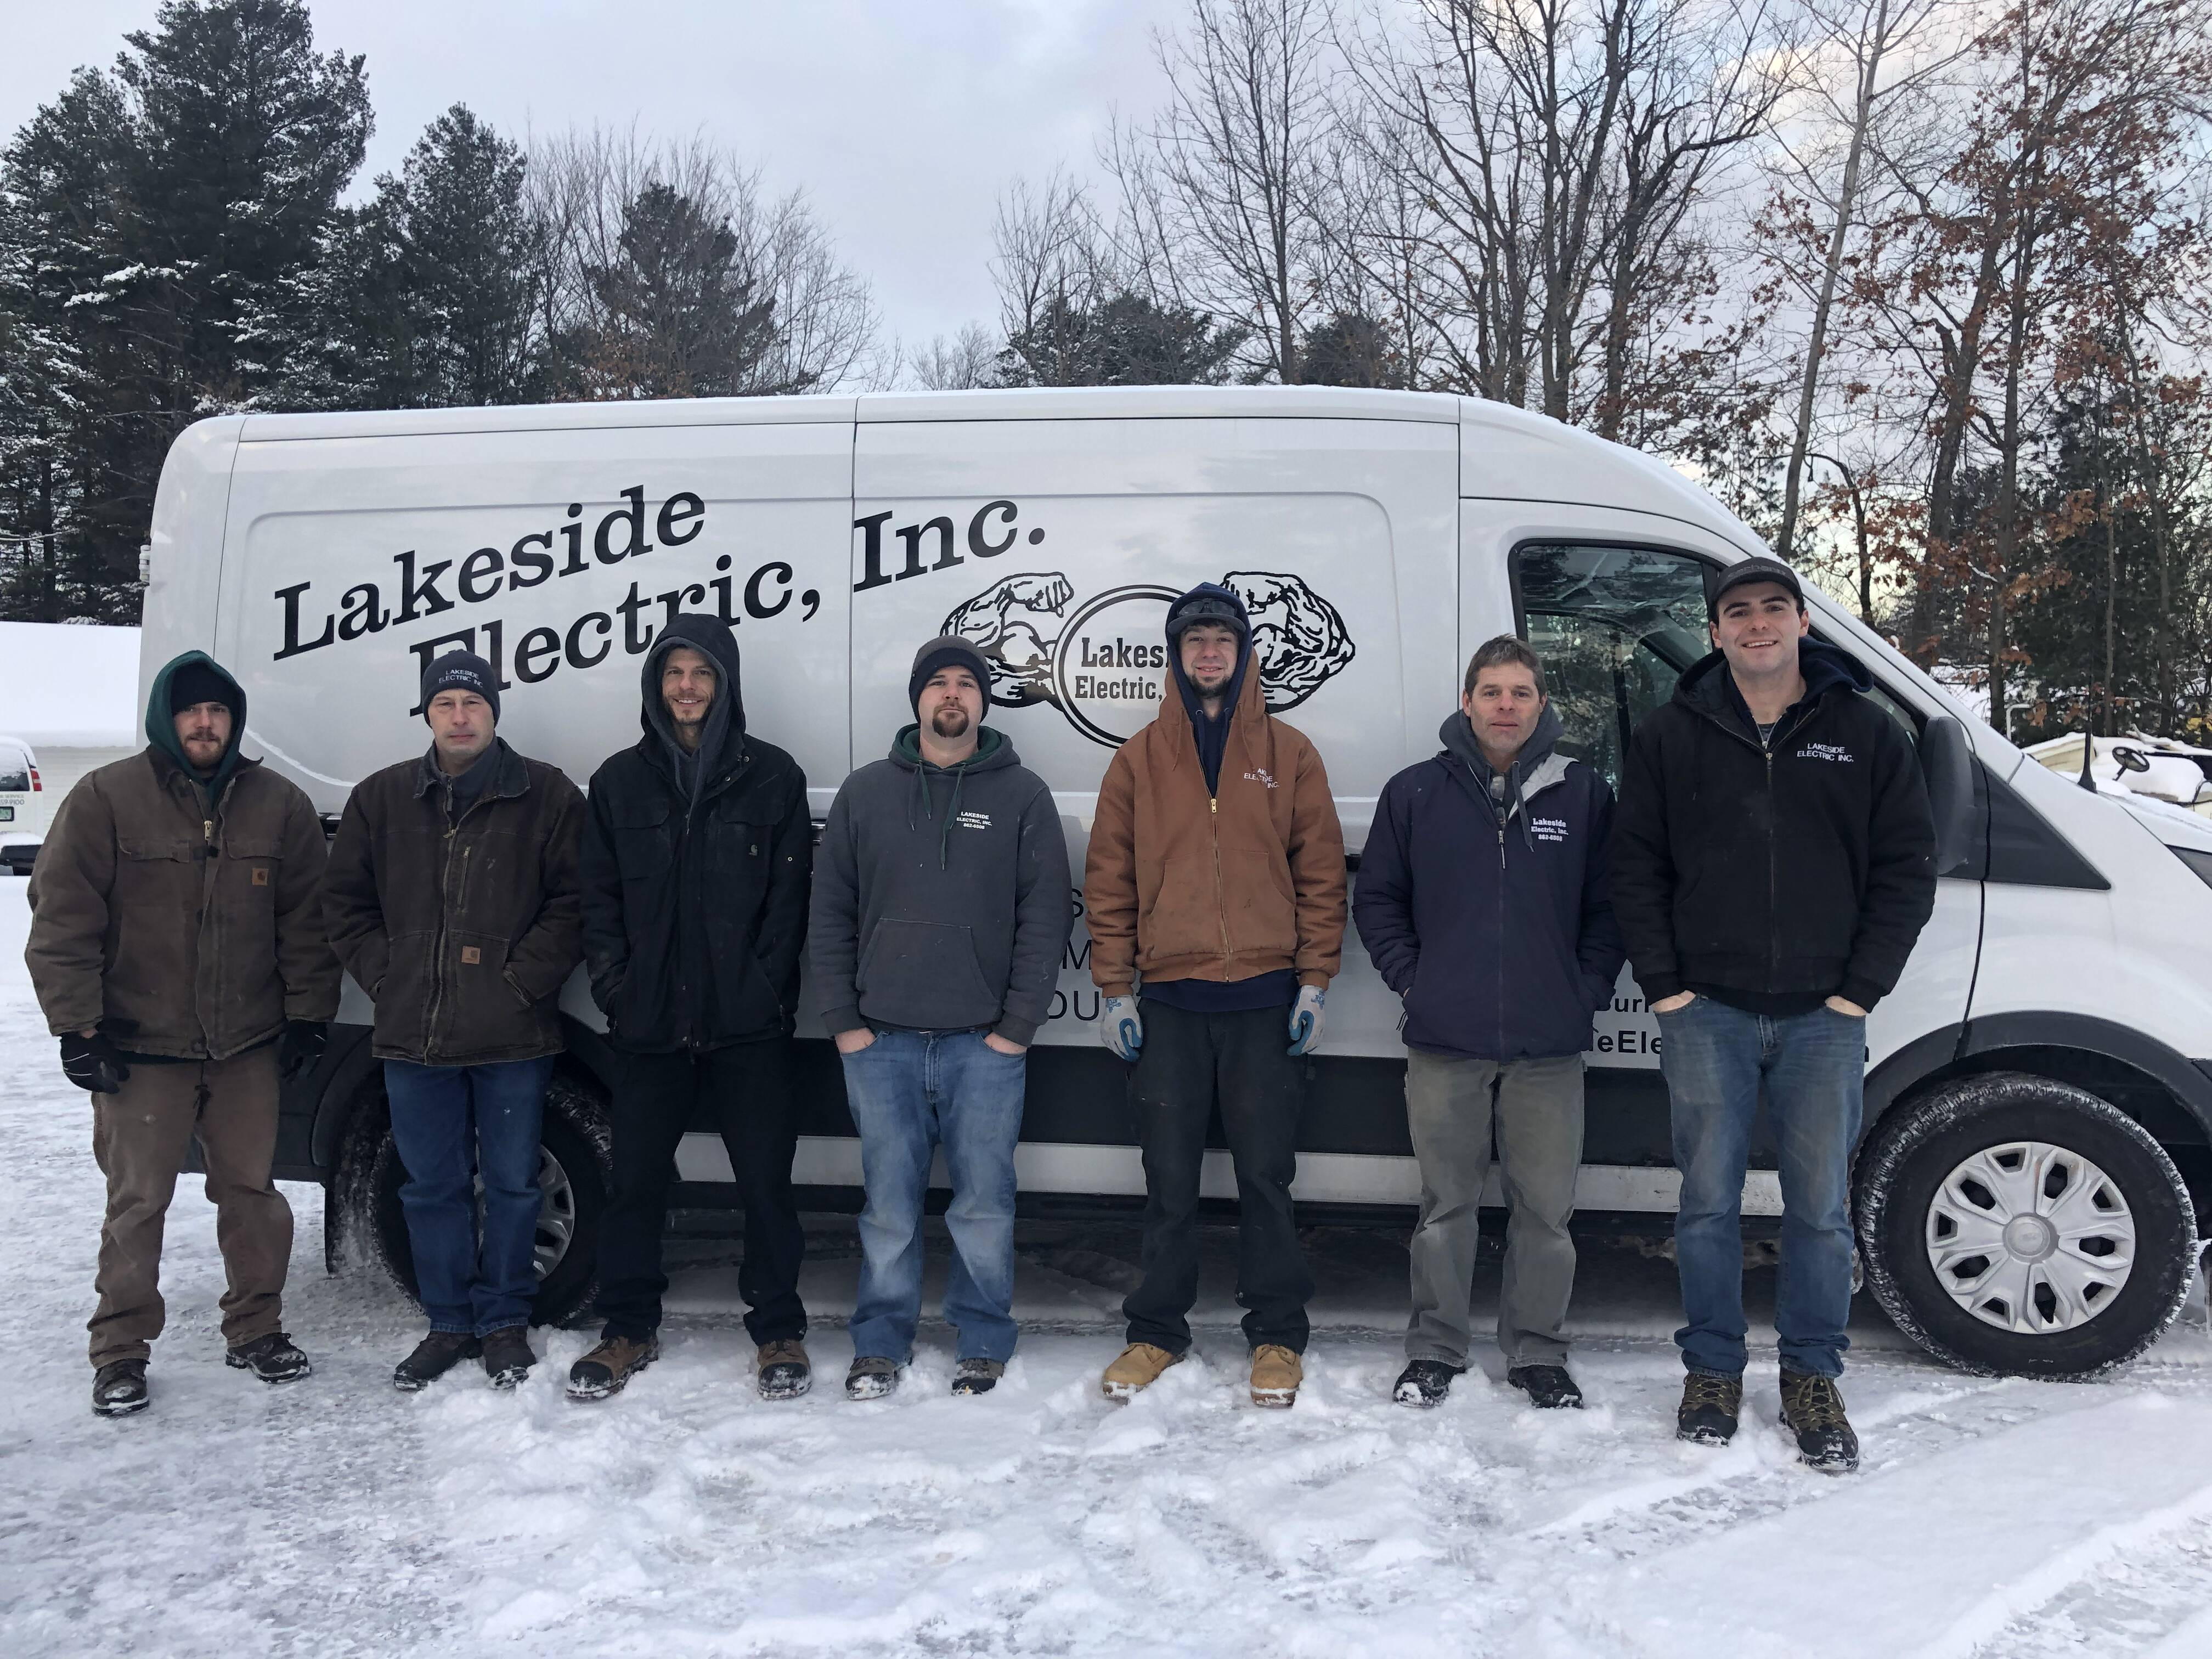 Our Team At Lakeside Electric Inc.